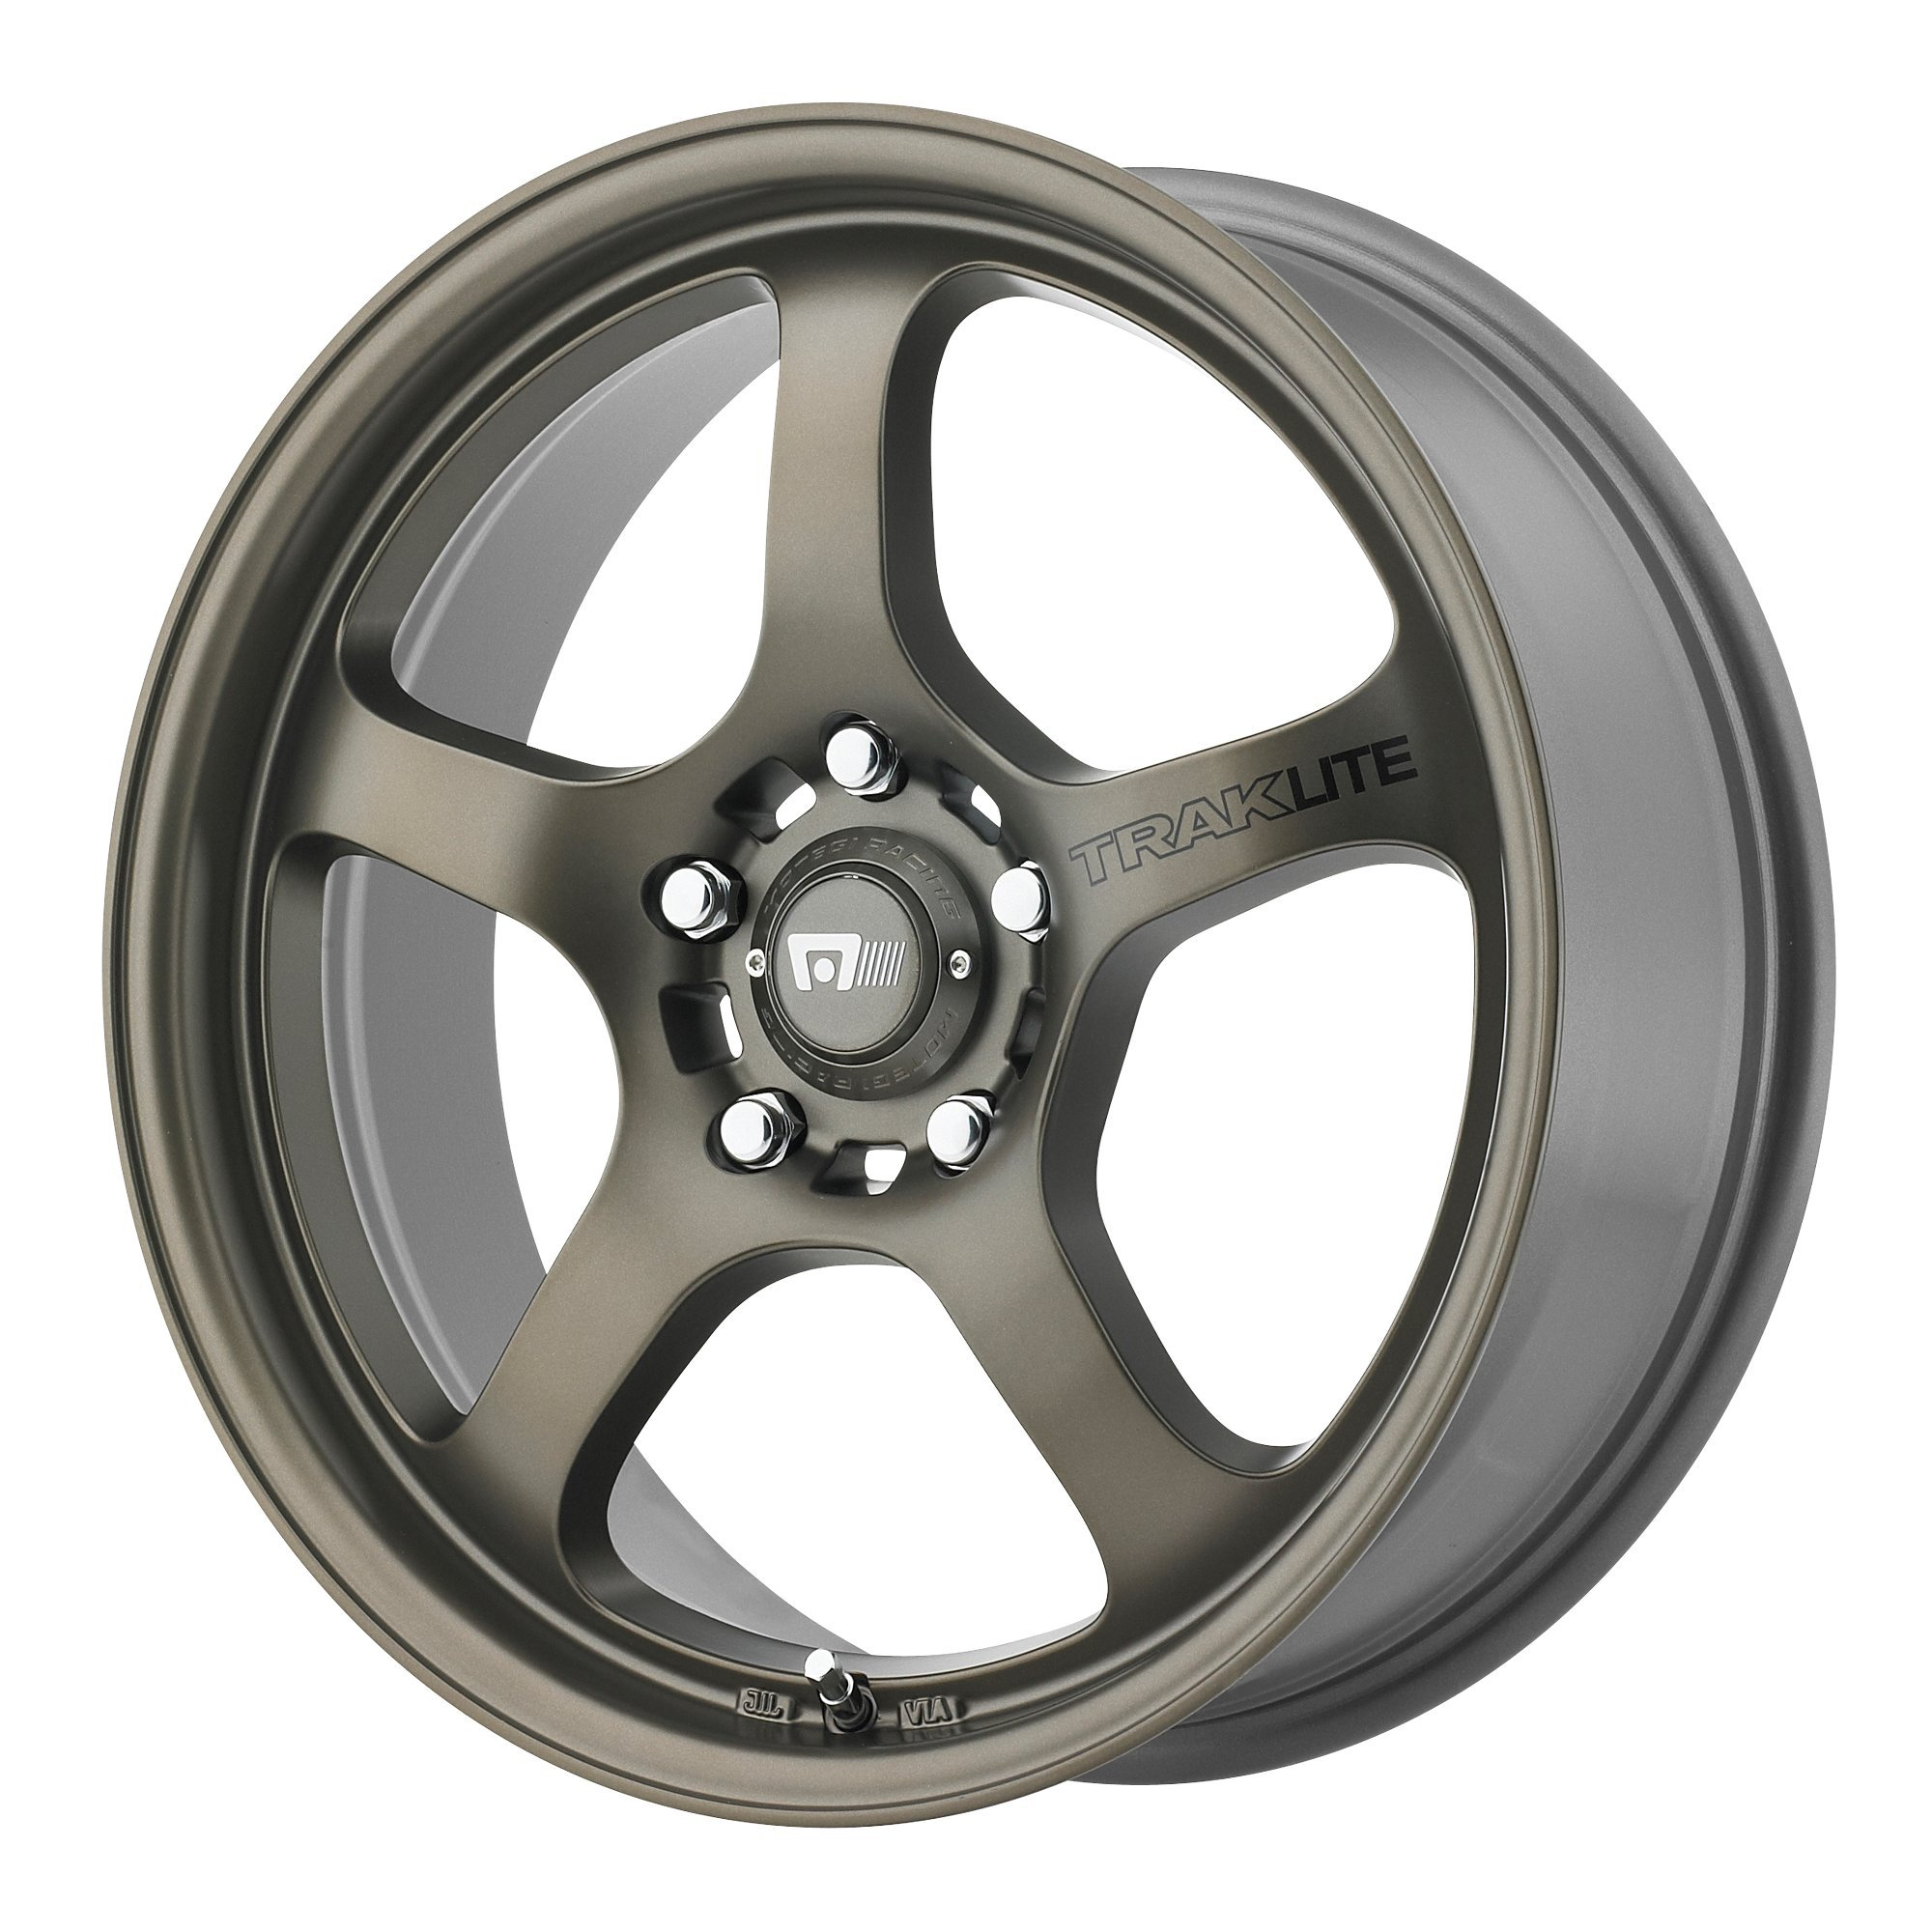 Motegi Racing MR131 Traklite Bronze Wheel (18x8''/5x114.3mm, +45mm offset)